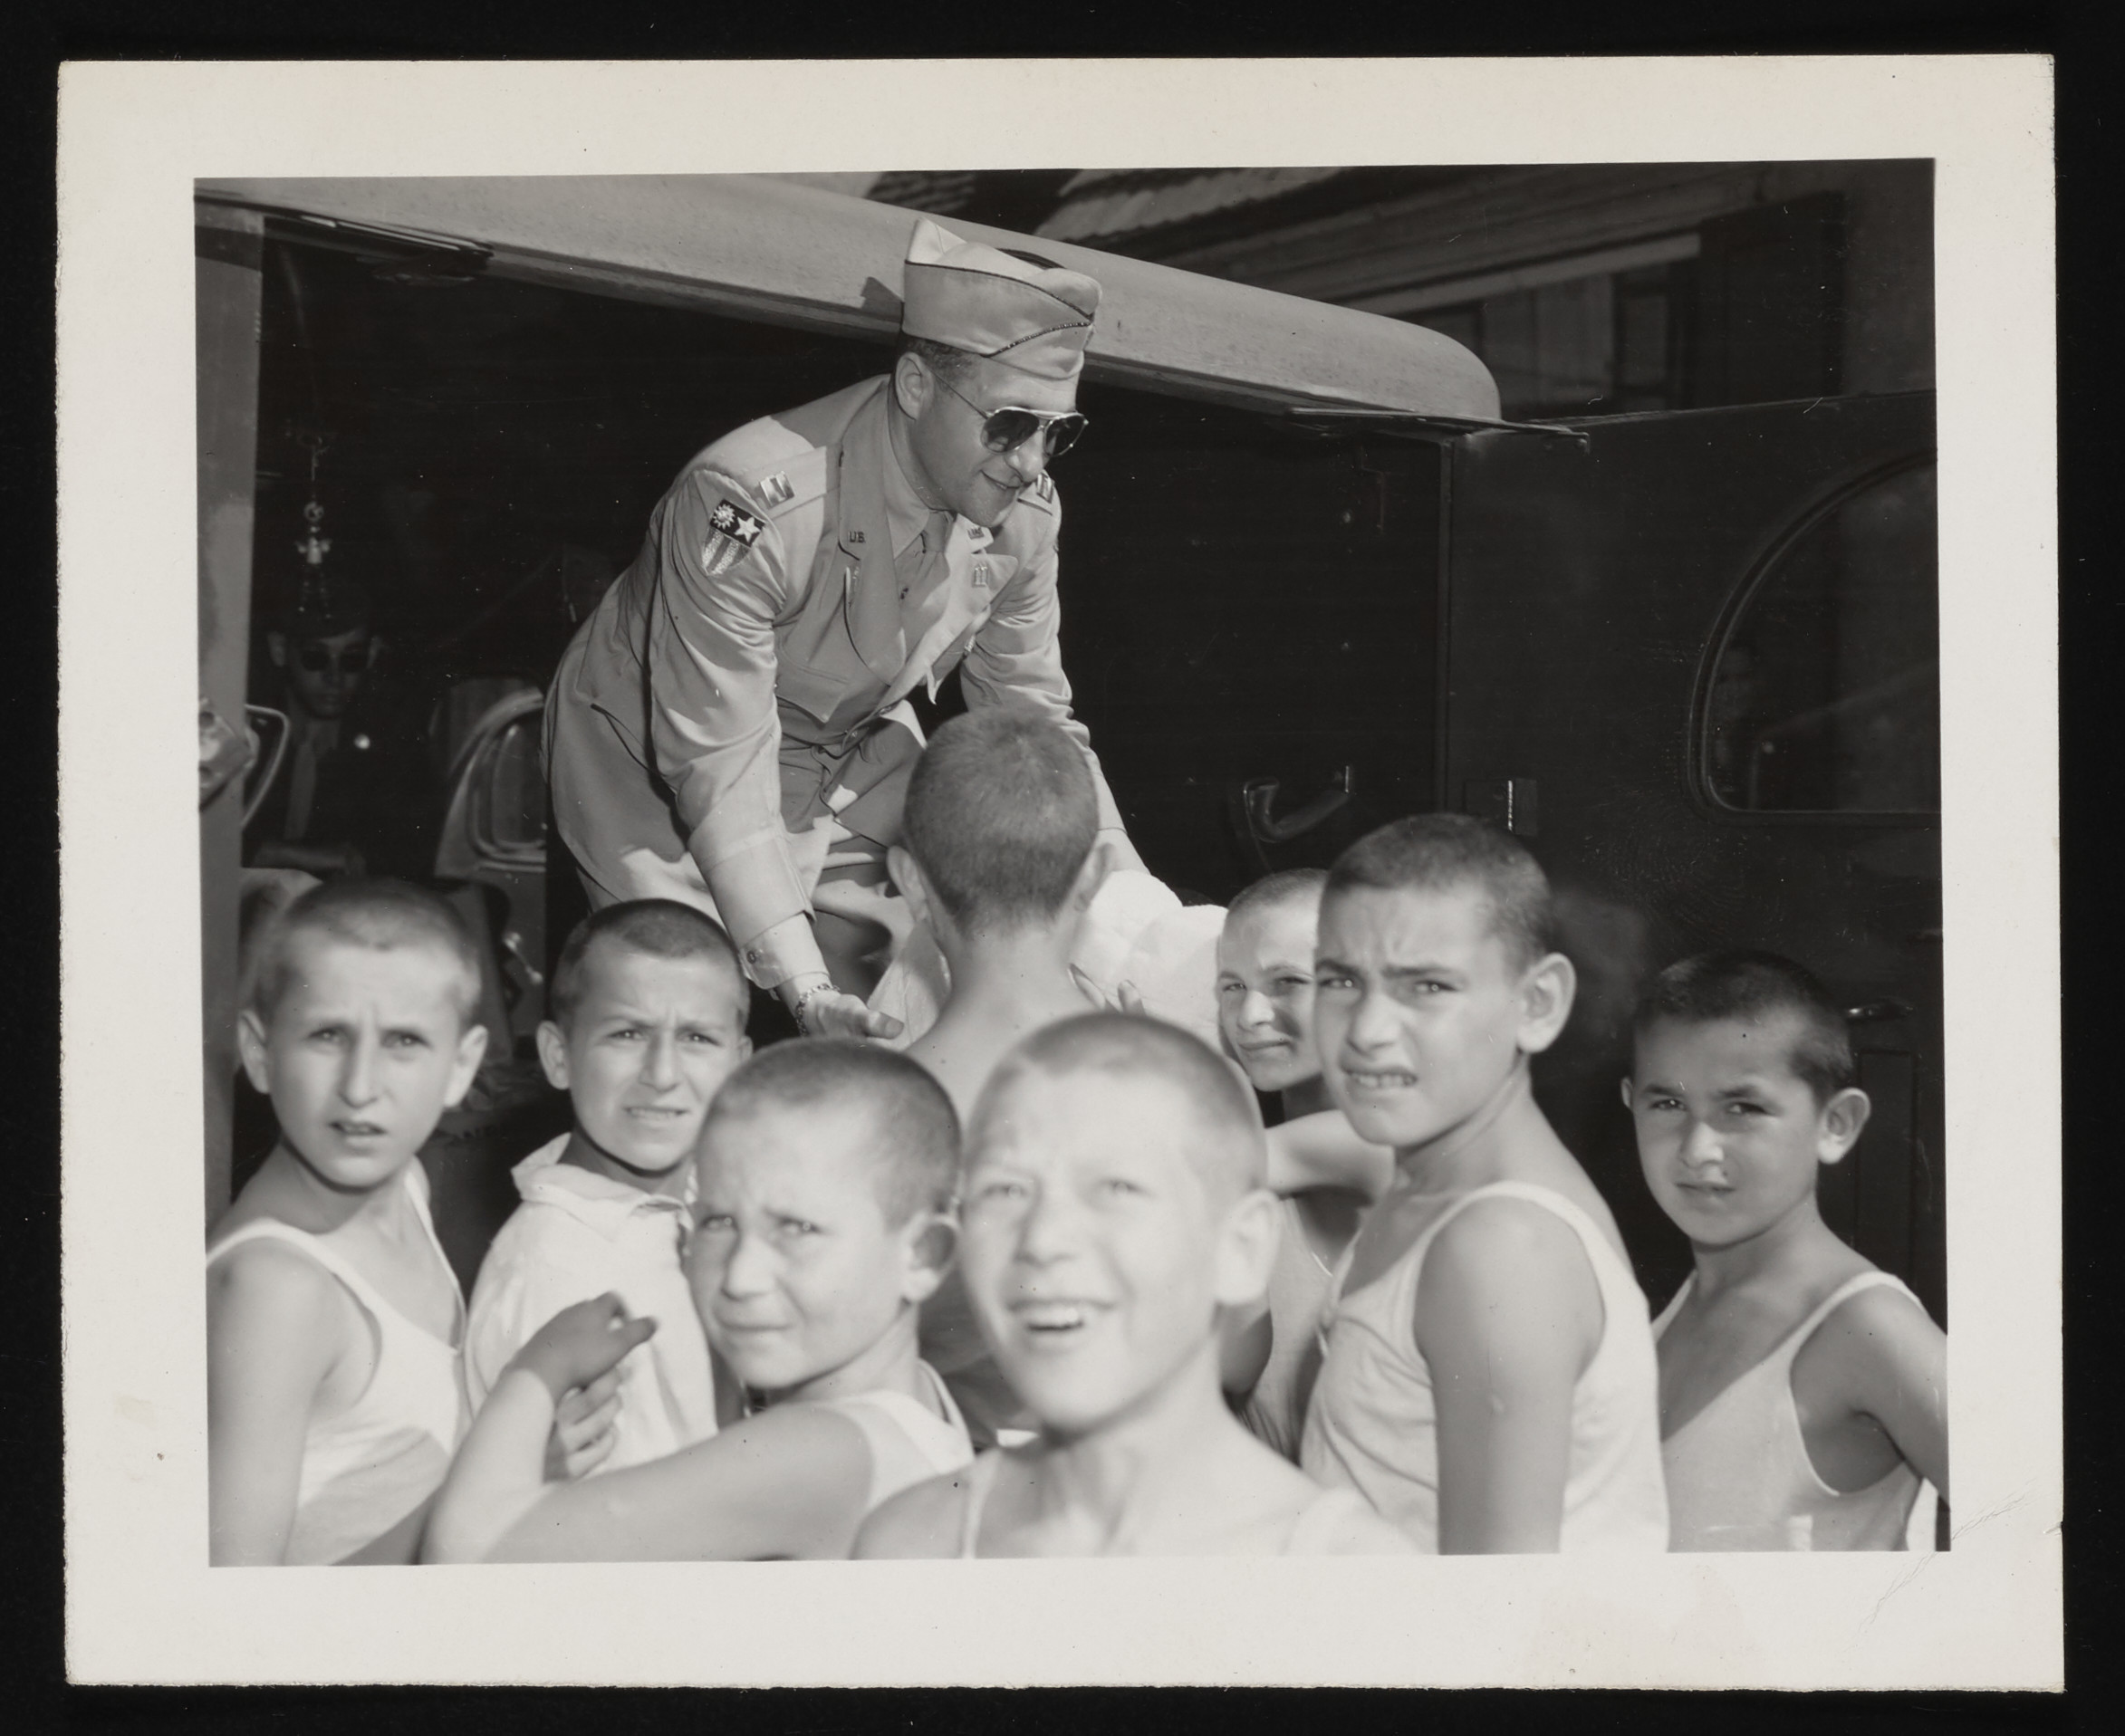 Chaplain William Dalin distributes packages of supplies to a group of boys at the Zeilsheim displaced persons camp children's center.